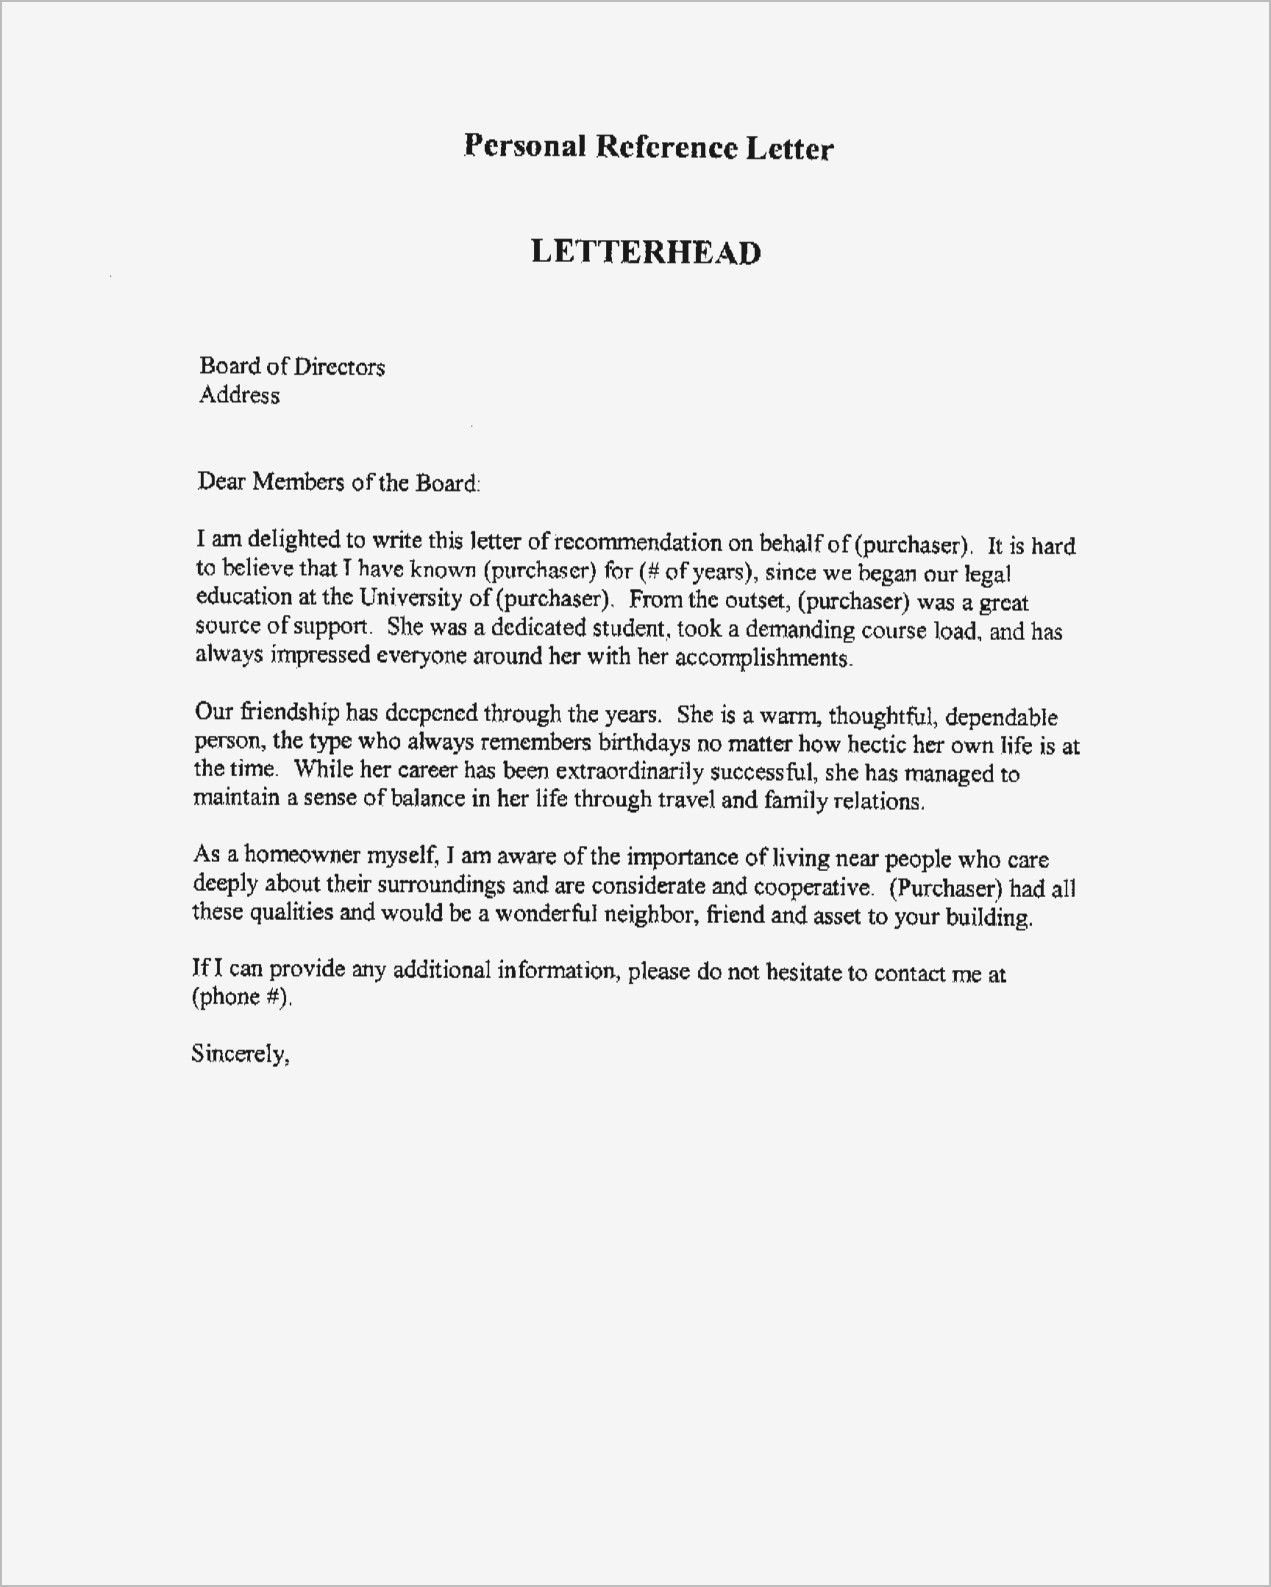 free sample personal reference letter template personal letter re mendation template ideas